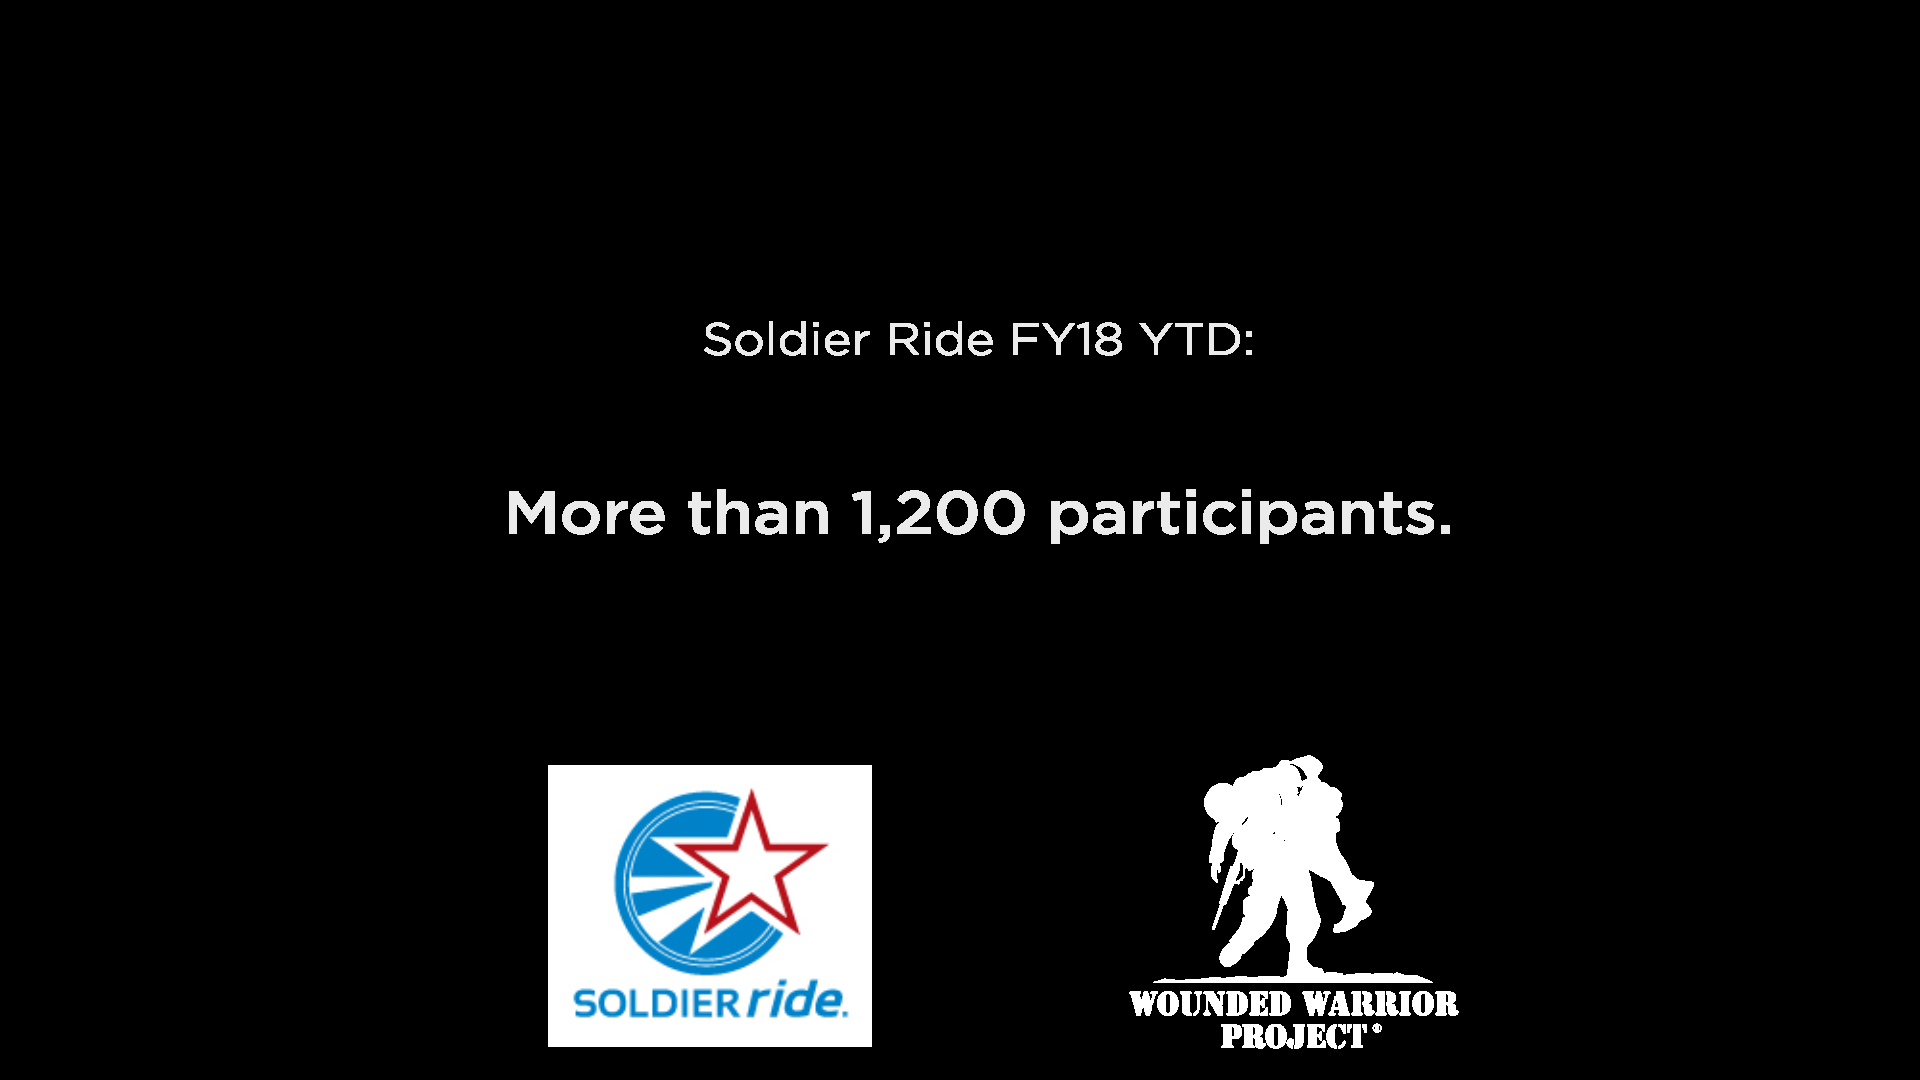 WWP Soldier Ride Stat – Total participation of warriors in Soldier Rides YTD.